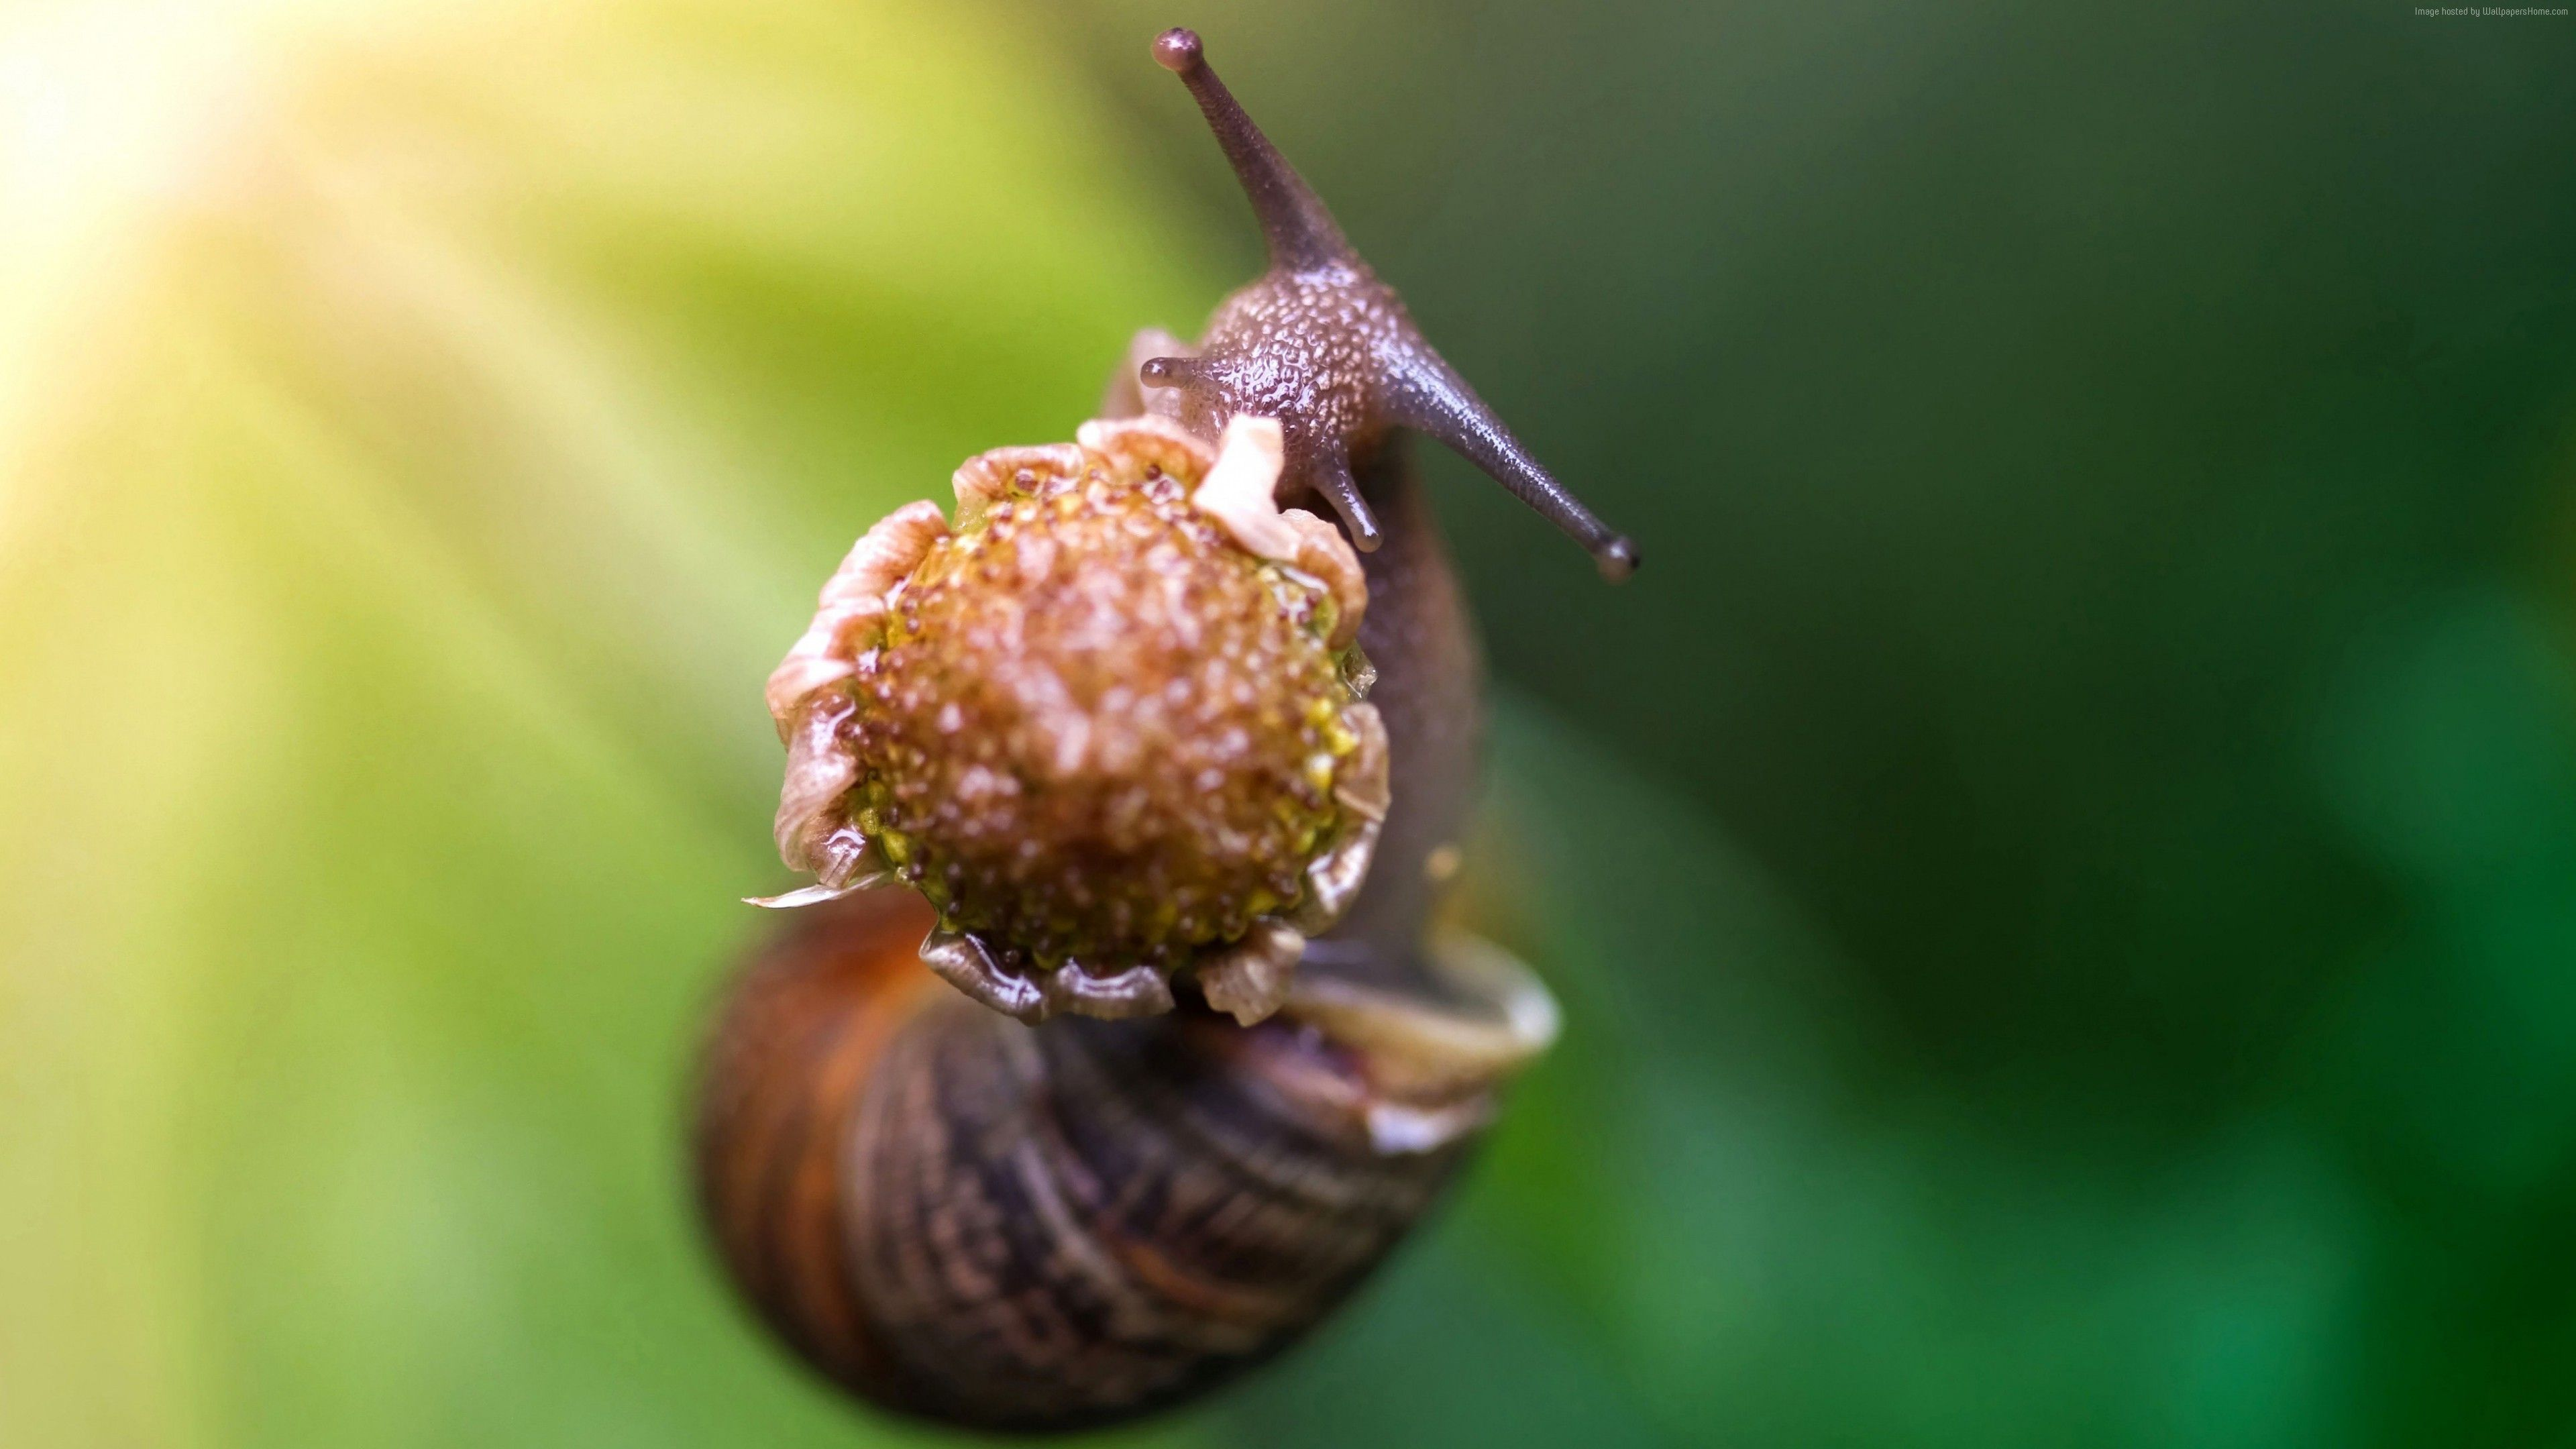 Wallpaper snail, eating flower, green background, nature ...